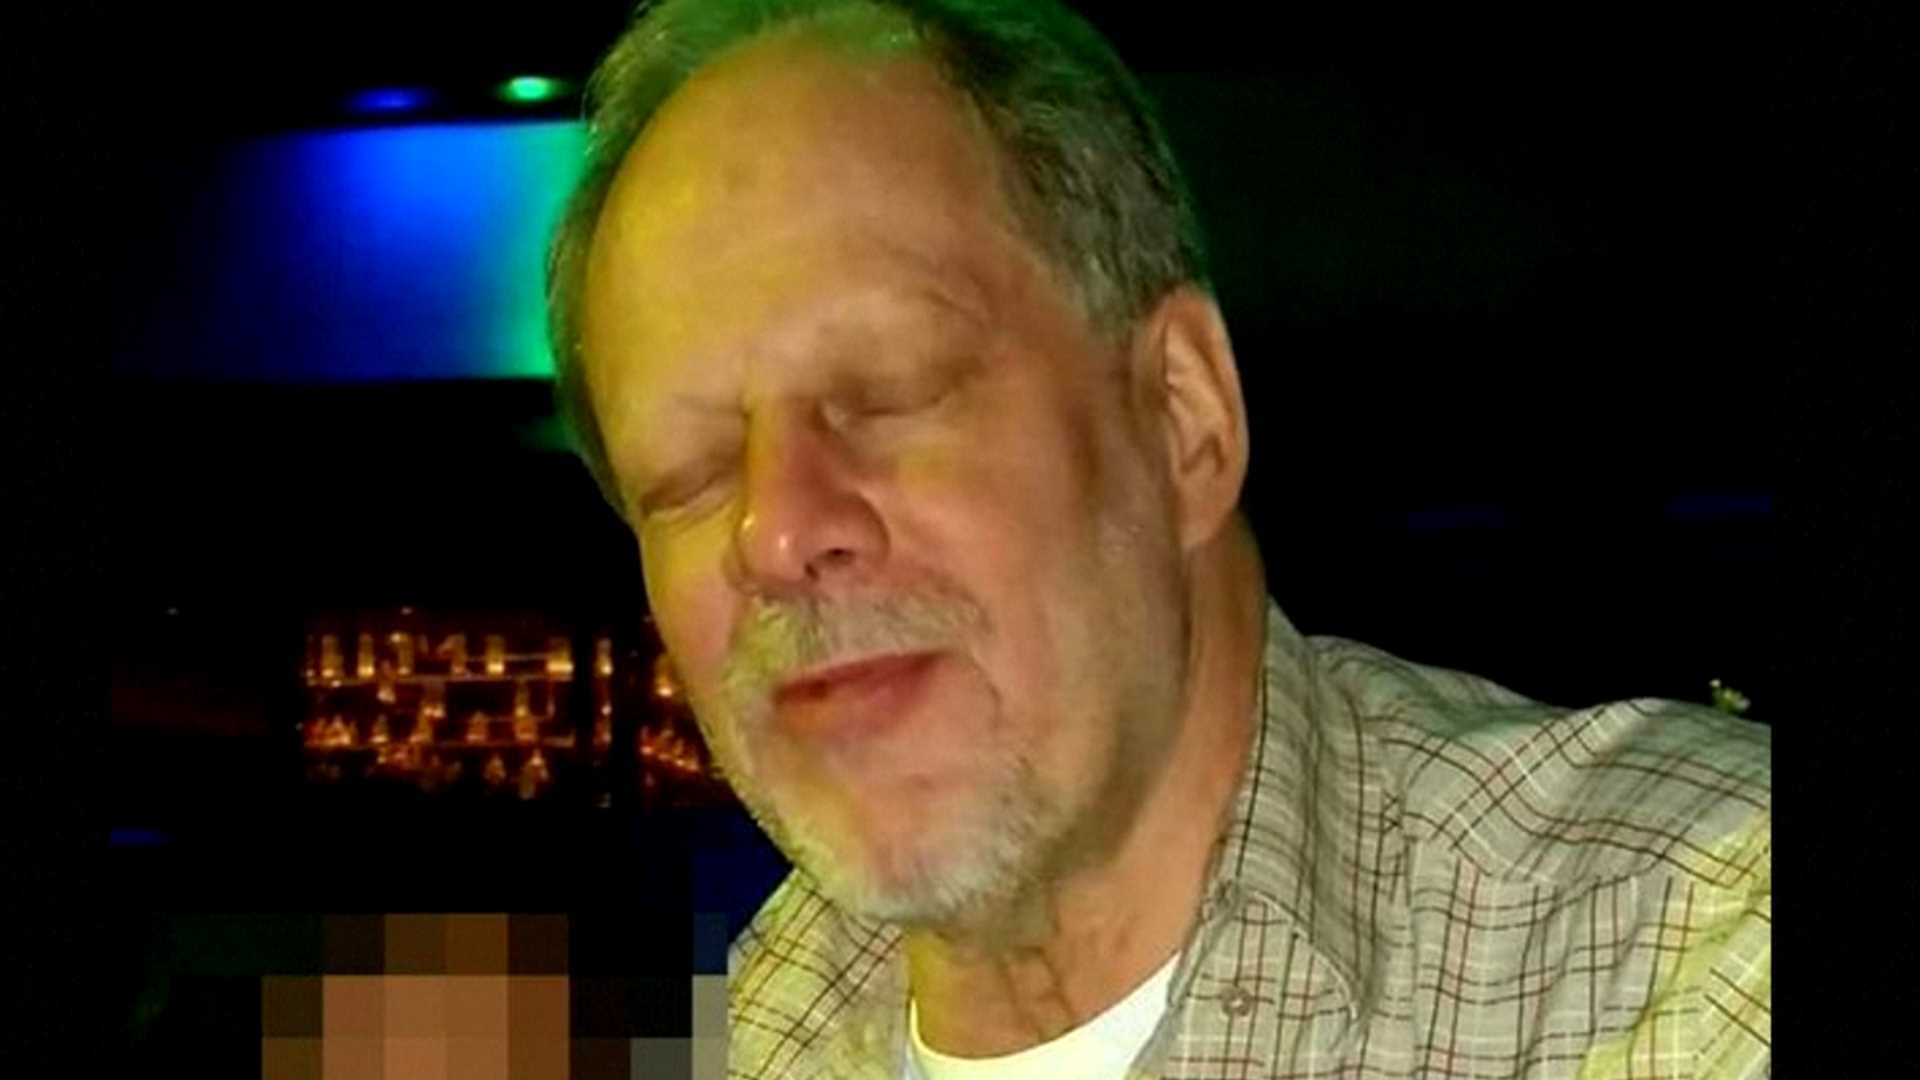 Photo of the man police say opened fire at the Mandalay Bay Hotel and Casino Sunday, 64-year-old Stephen Craig Paddock. (NBC/WESH)